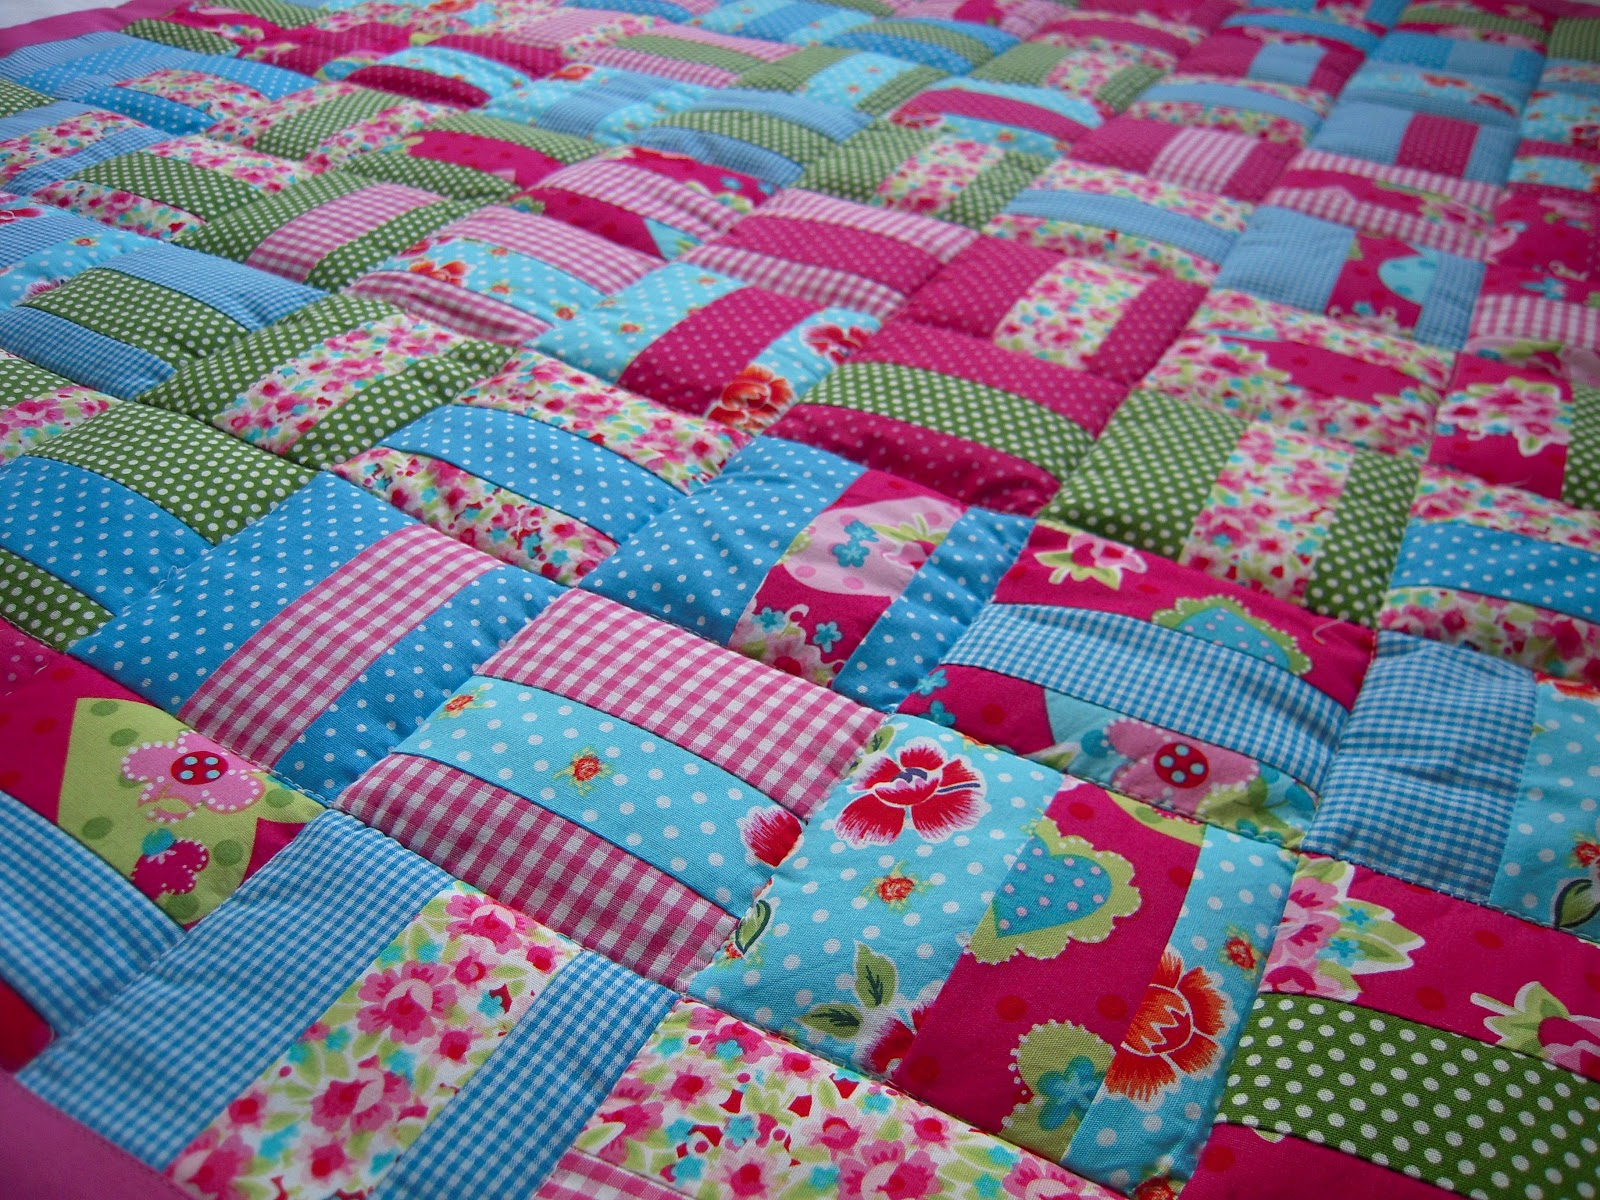 Patchwork Babydecke Muster Patchworkdecke